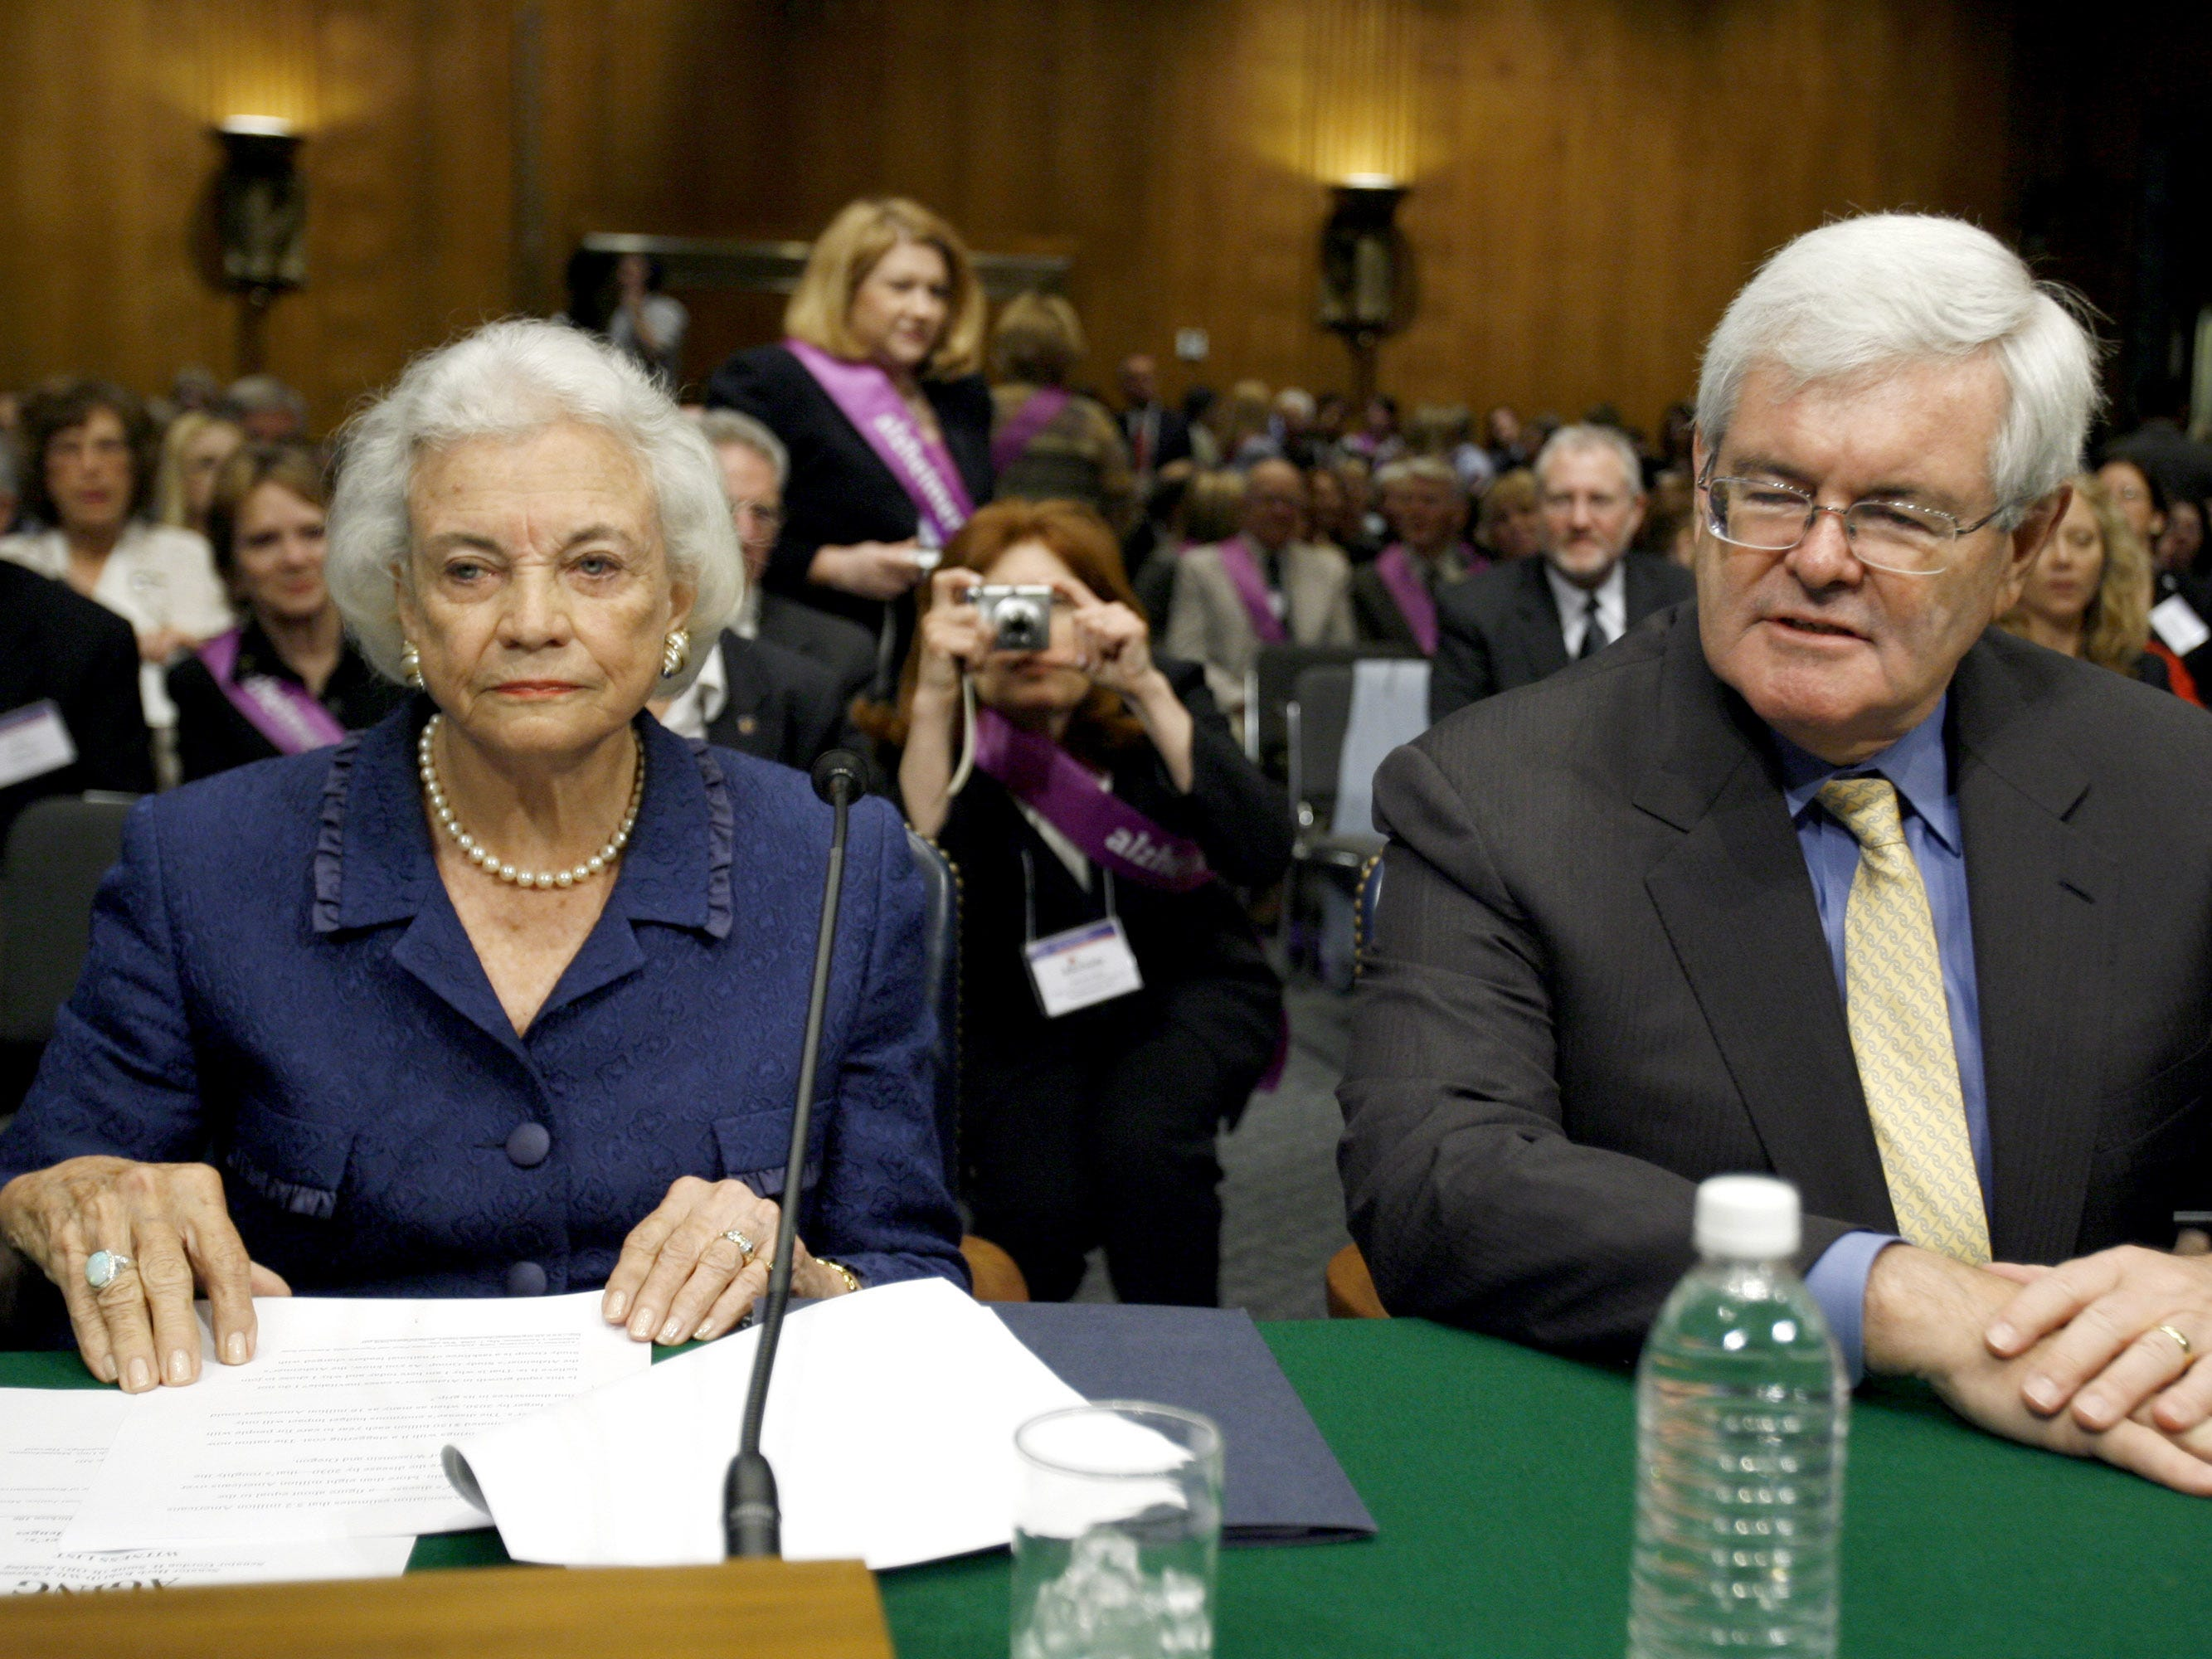 Former Supreme Court Justice Sandra Day O'Connor and former House Speaker Newt Gingrich testify on Capitol Hill in Washington, Wednesday, May 14, 2008, before the Senate Special Committee on Aging hearing on Alzheimer's disease.